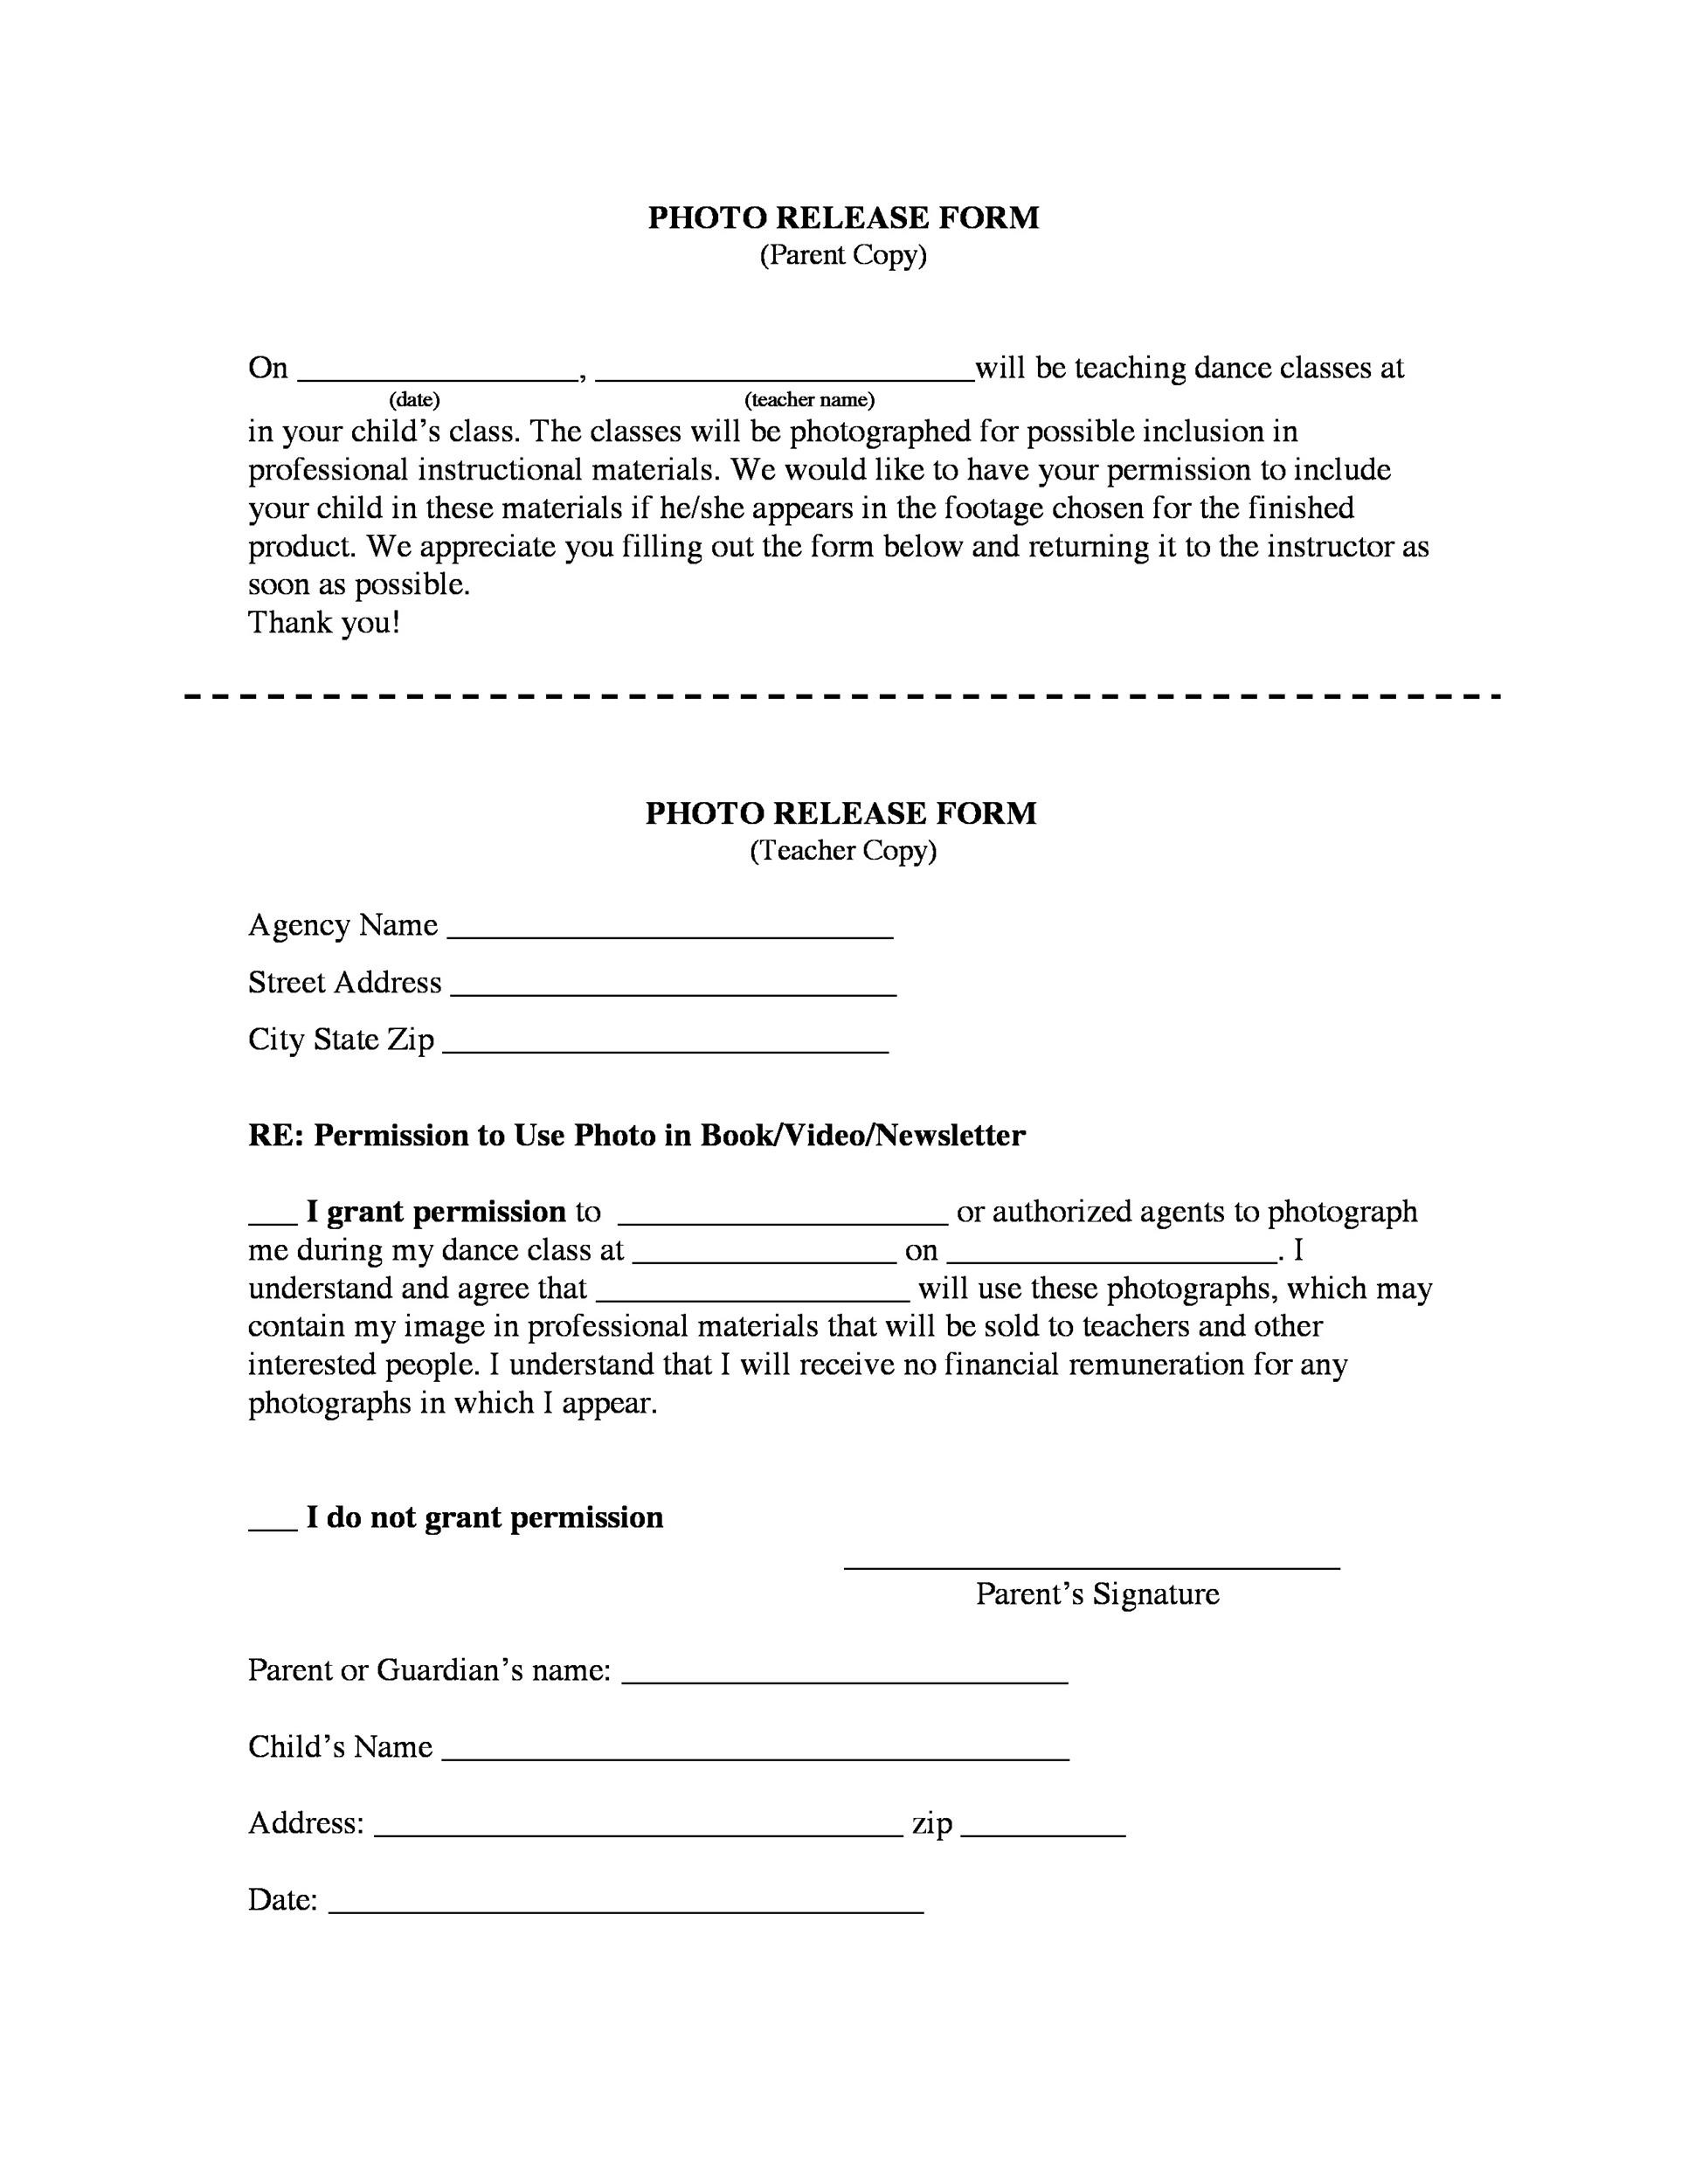 Free photo release form 31